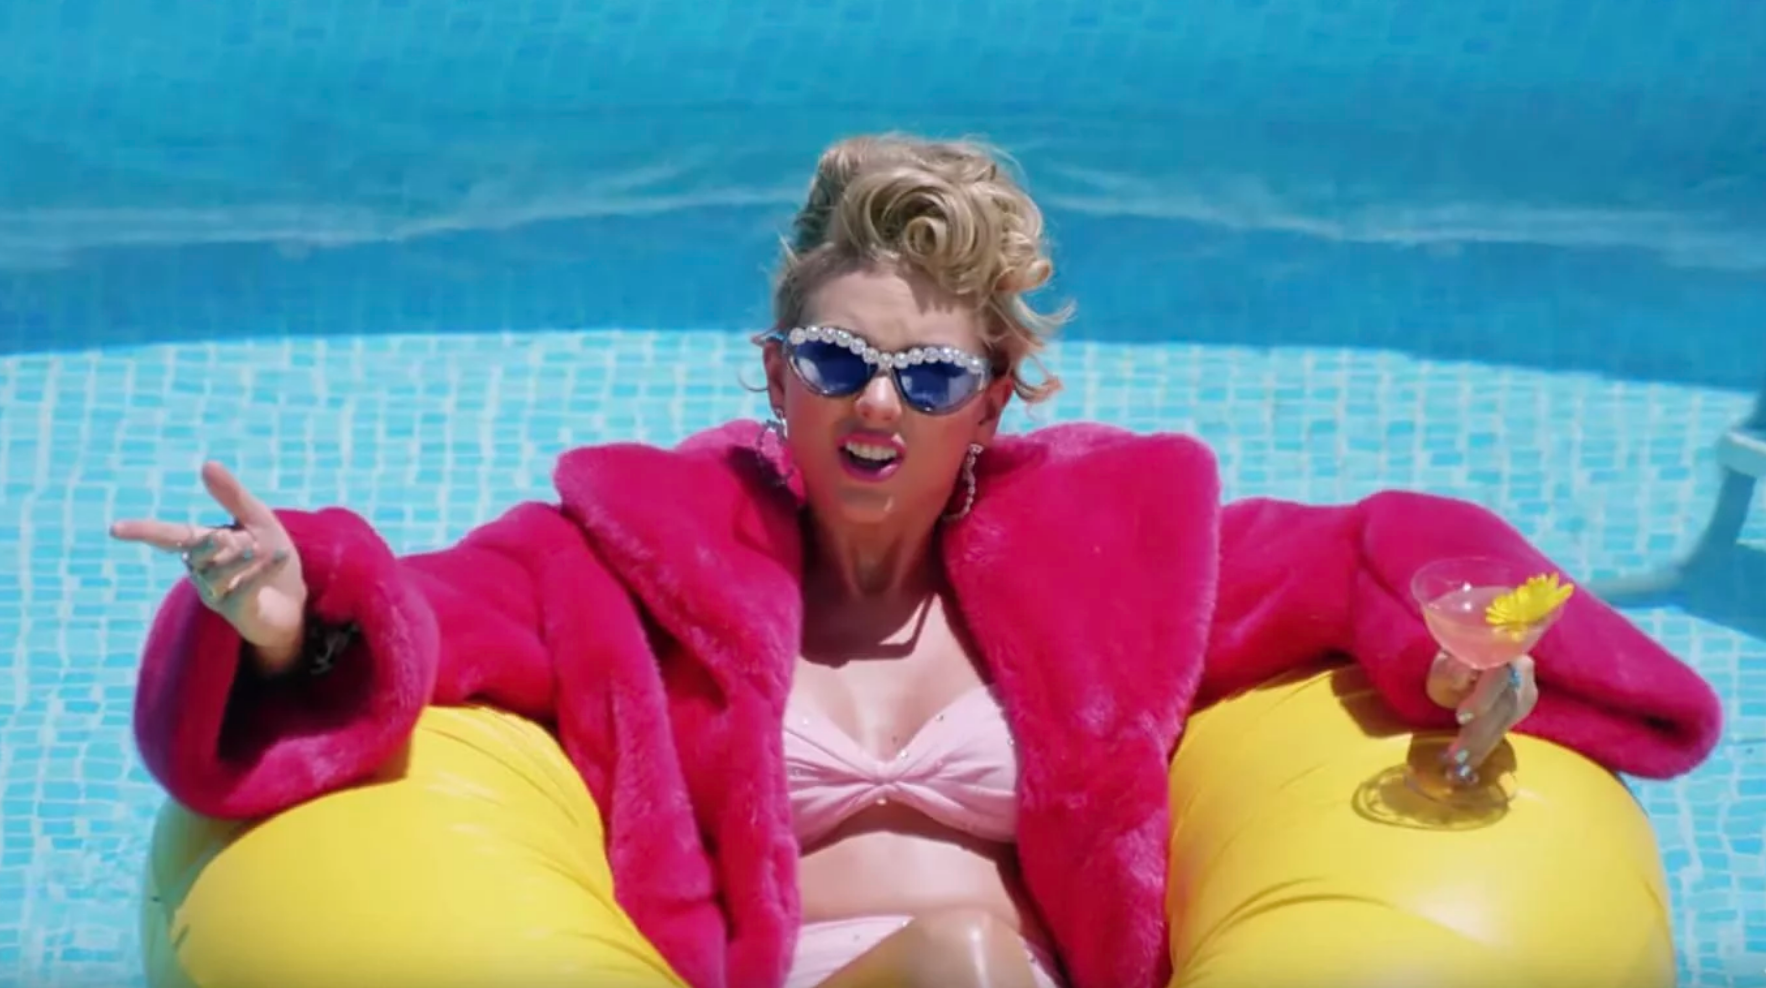 Taylor Swift S Gay Anthem Lgbt Filmmakers On Divisive Music Video Indiewire